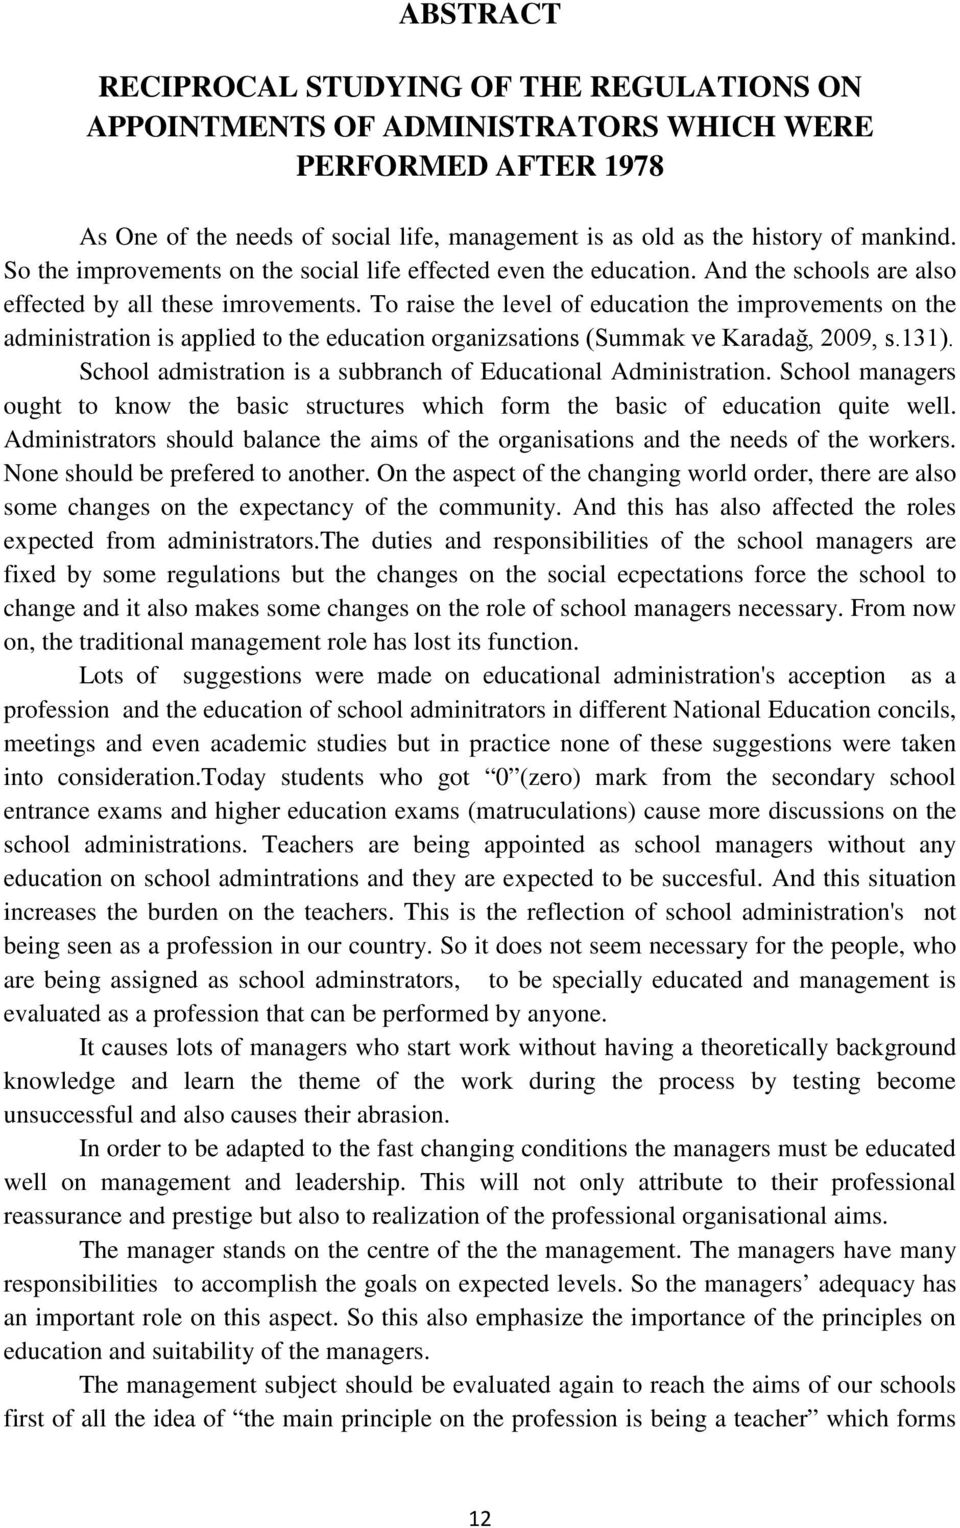 To raise the level of education the improvements on the administration is applied to the education organizsations (Summak ve Karadağ, 2009, s.131).